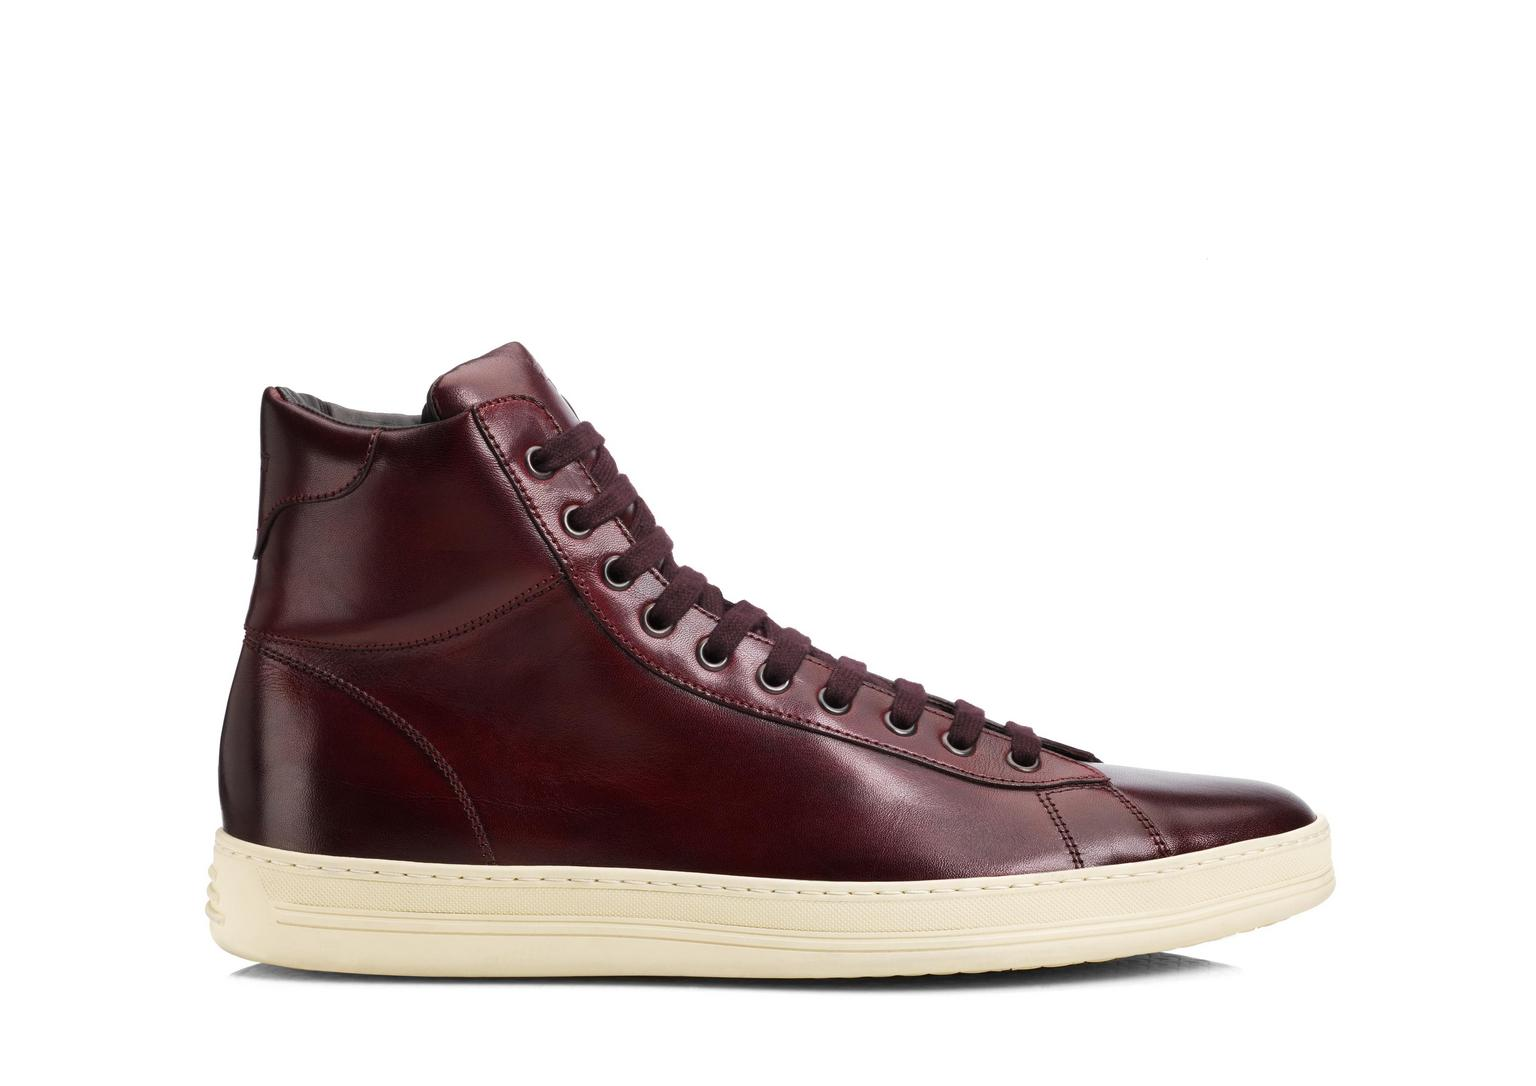 Russel Leather High Top Sneaker